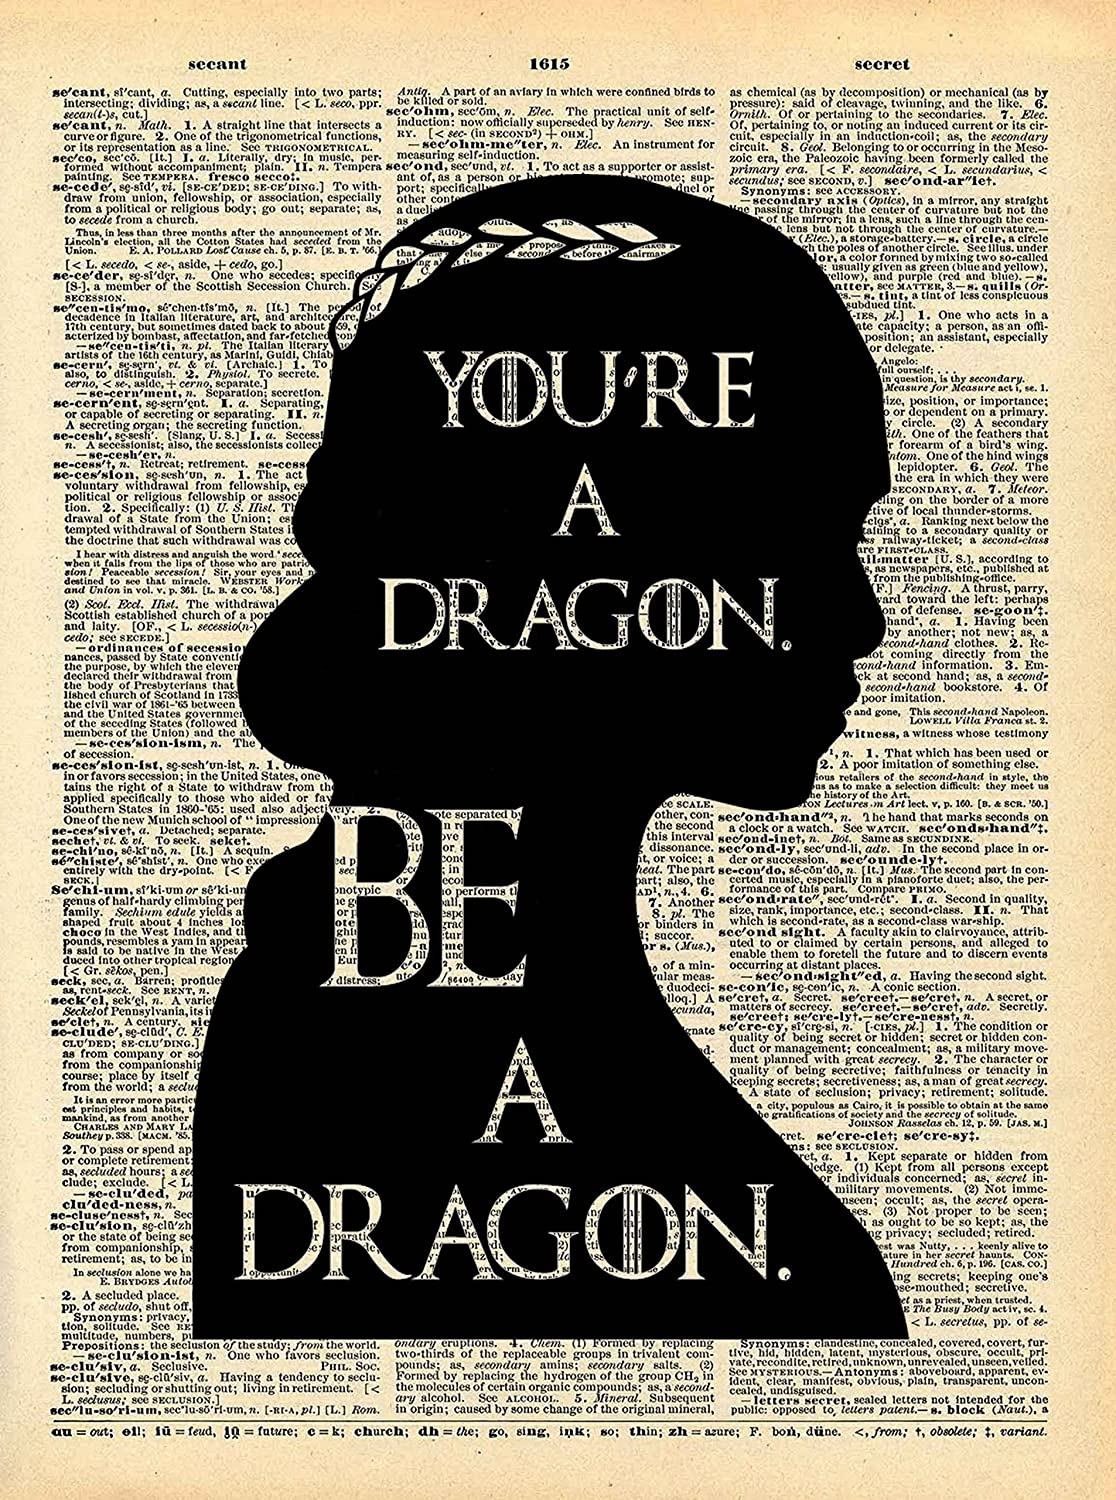 Khaleesi Dragon Quote Game of Thrones Art Vintage Dictionary Print 8x10 inch Home Vintage Art Abstract Prints Wall Art for Home Decor Wall Decorations Office Ready-to-Frame Dragon